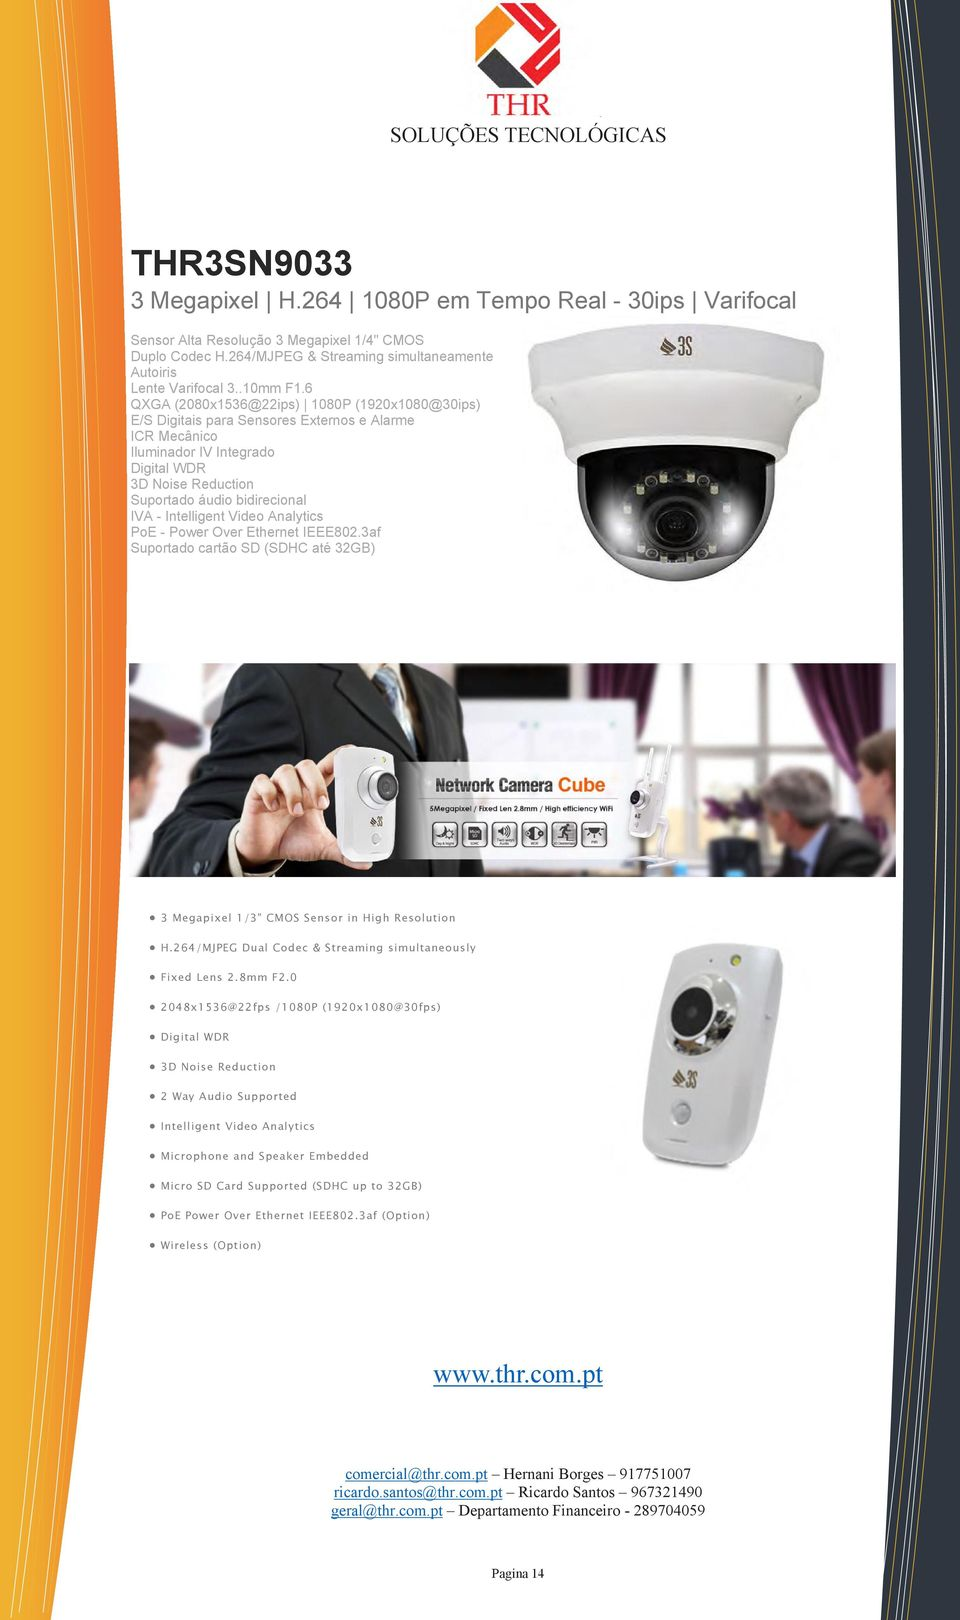 Intelligent Video Analytics PoE - Power Over Ethernet IEEE802.3af Suportado cartão SD (SDHC até 32GB) 14 3 Megapixel 1/3 CMOS Sensor in High Resolution H.